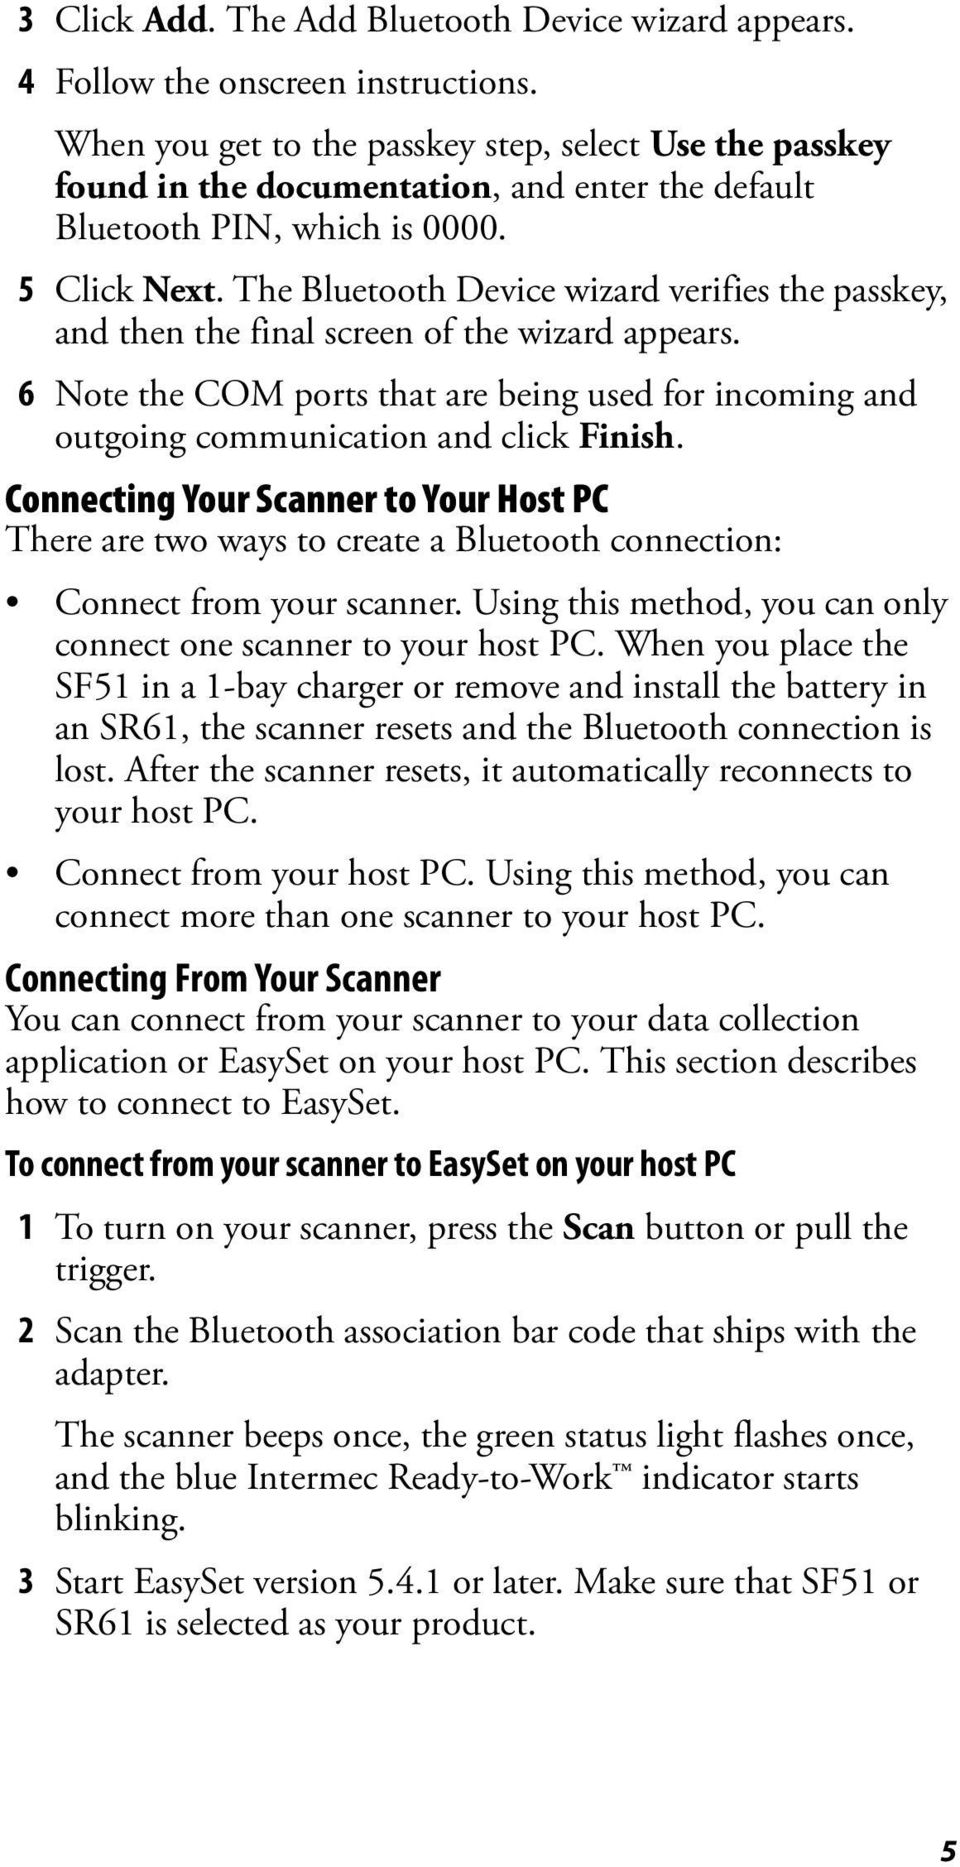 The Bluetooth Device wizard verifies the passkey, and then the final screen of the wizard appears. 6 Note the COM ports that are being used for incoming and outgoing communication and click Finish.